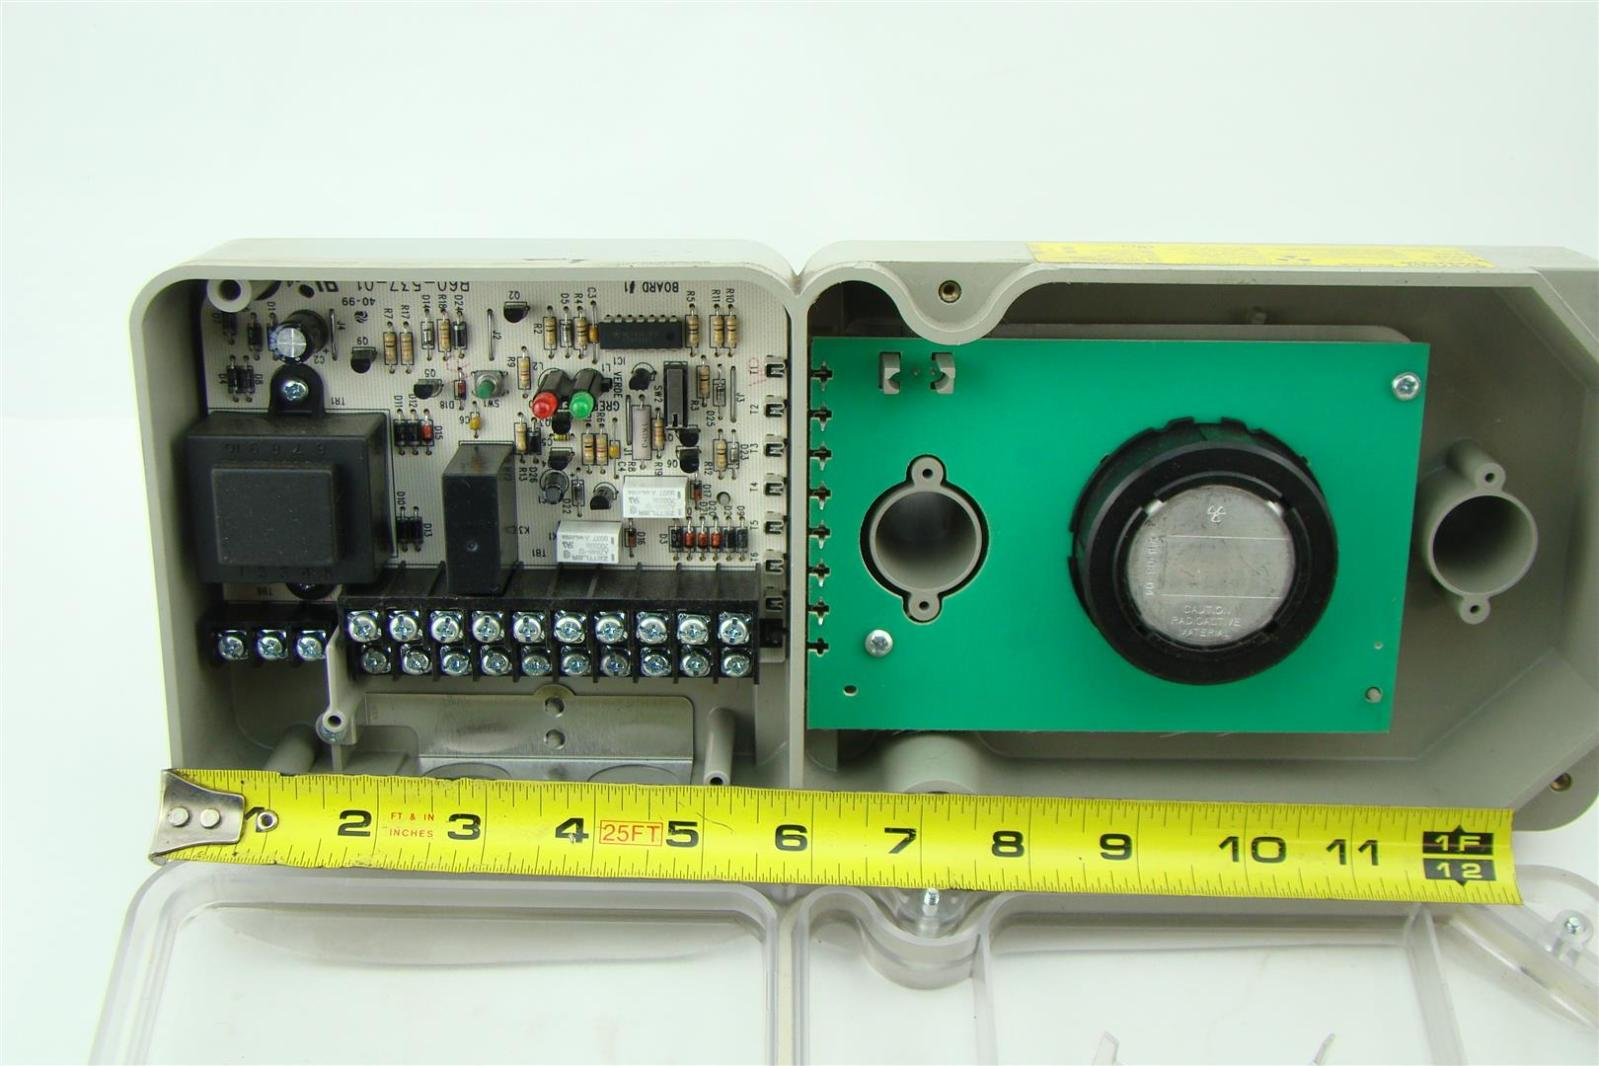 System Sensor Smoke Detector For Duct Application Dh100acdc1 Ebay Circuit